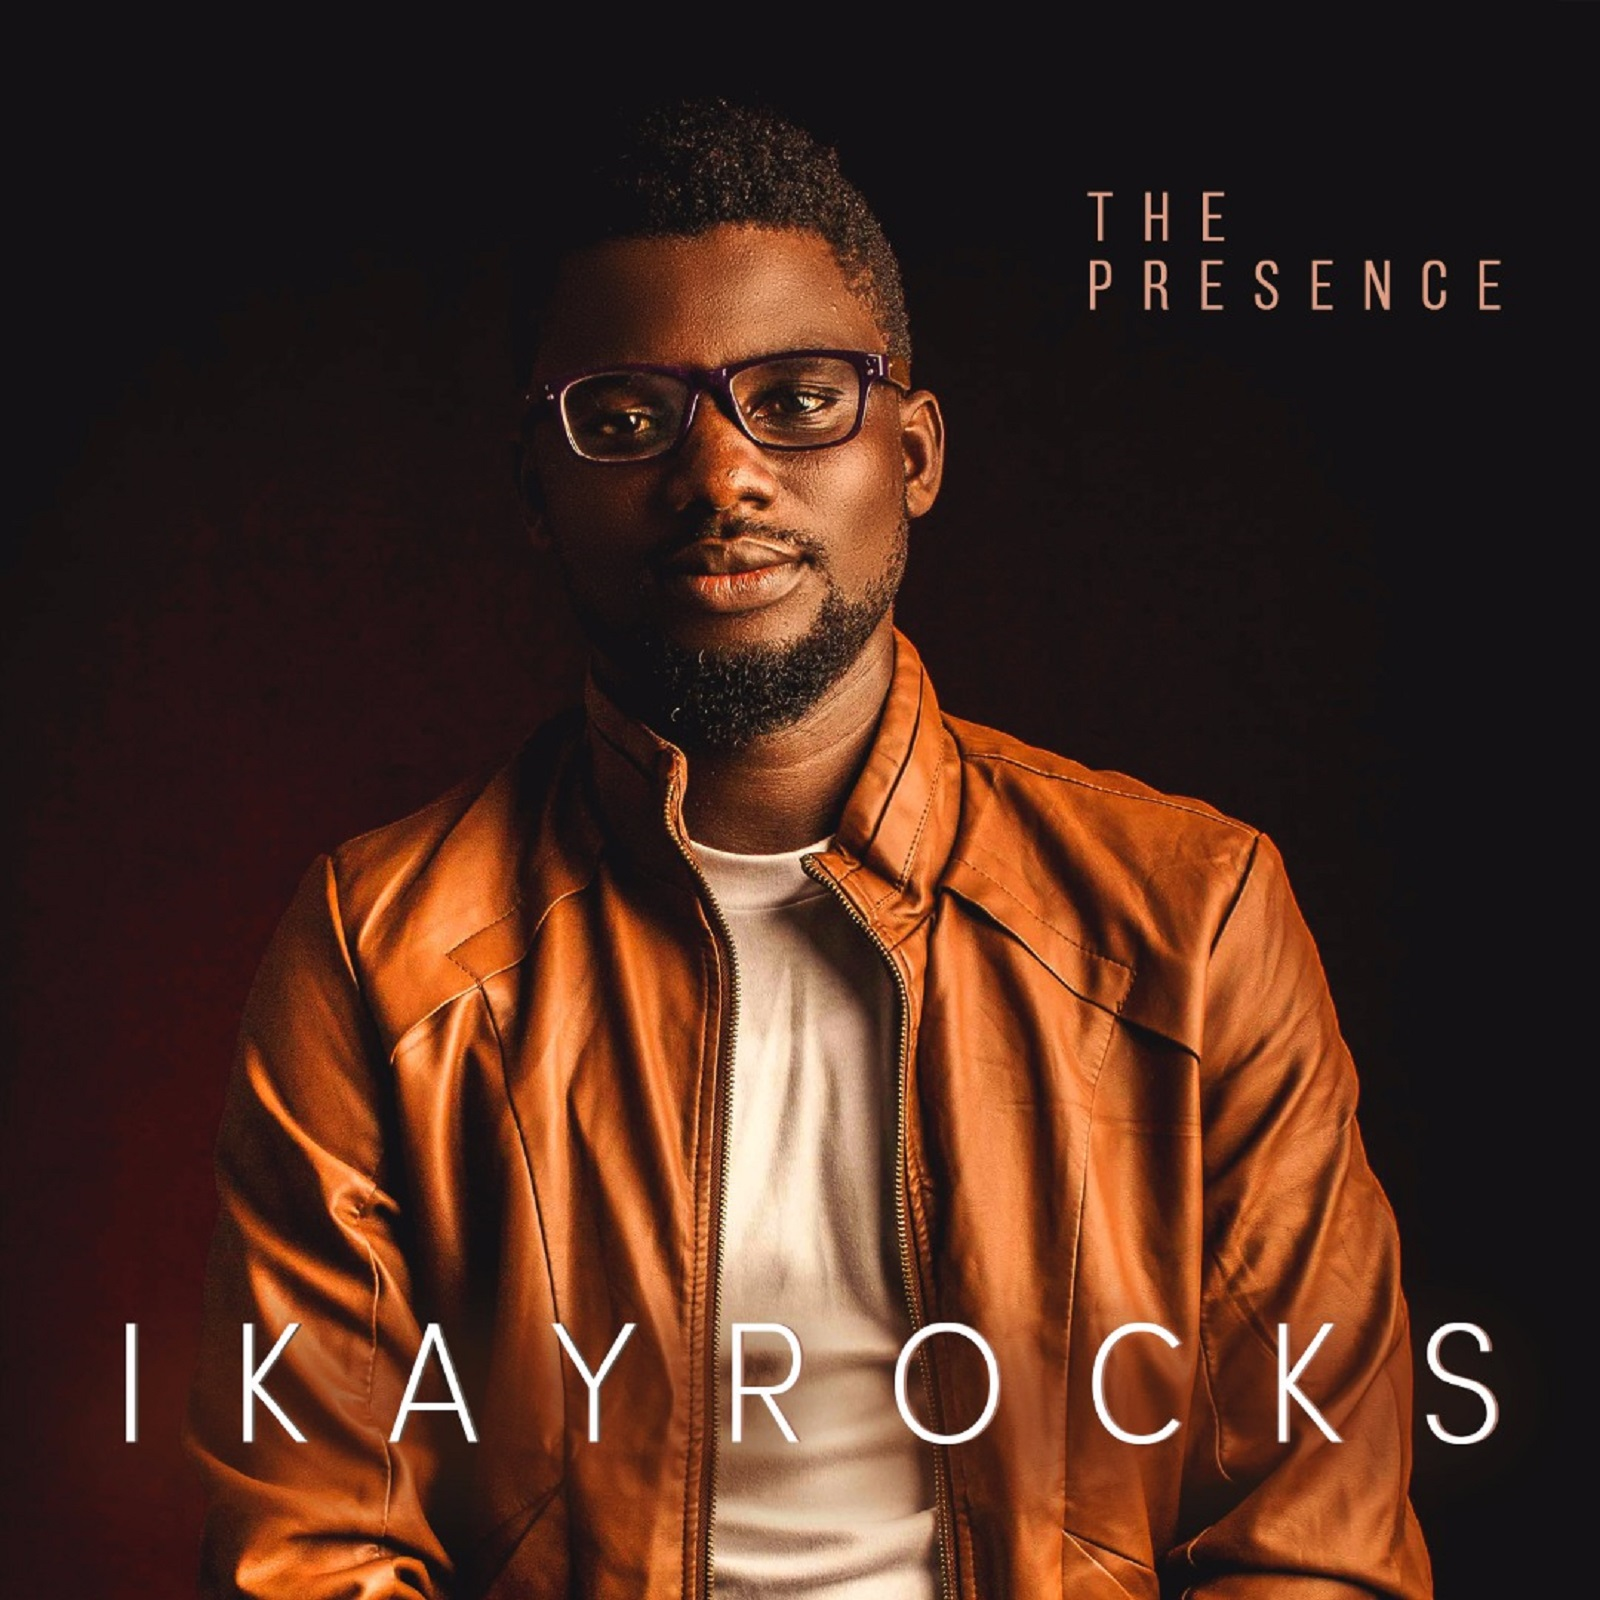 The Presence Album By Ikay Rocks Now Out! [@IkayRocks]